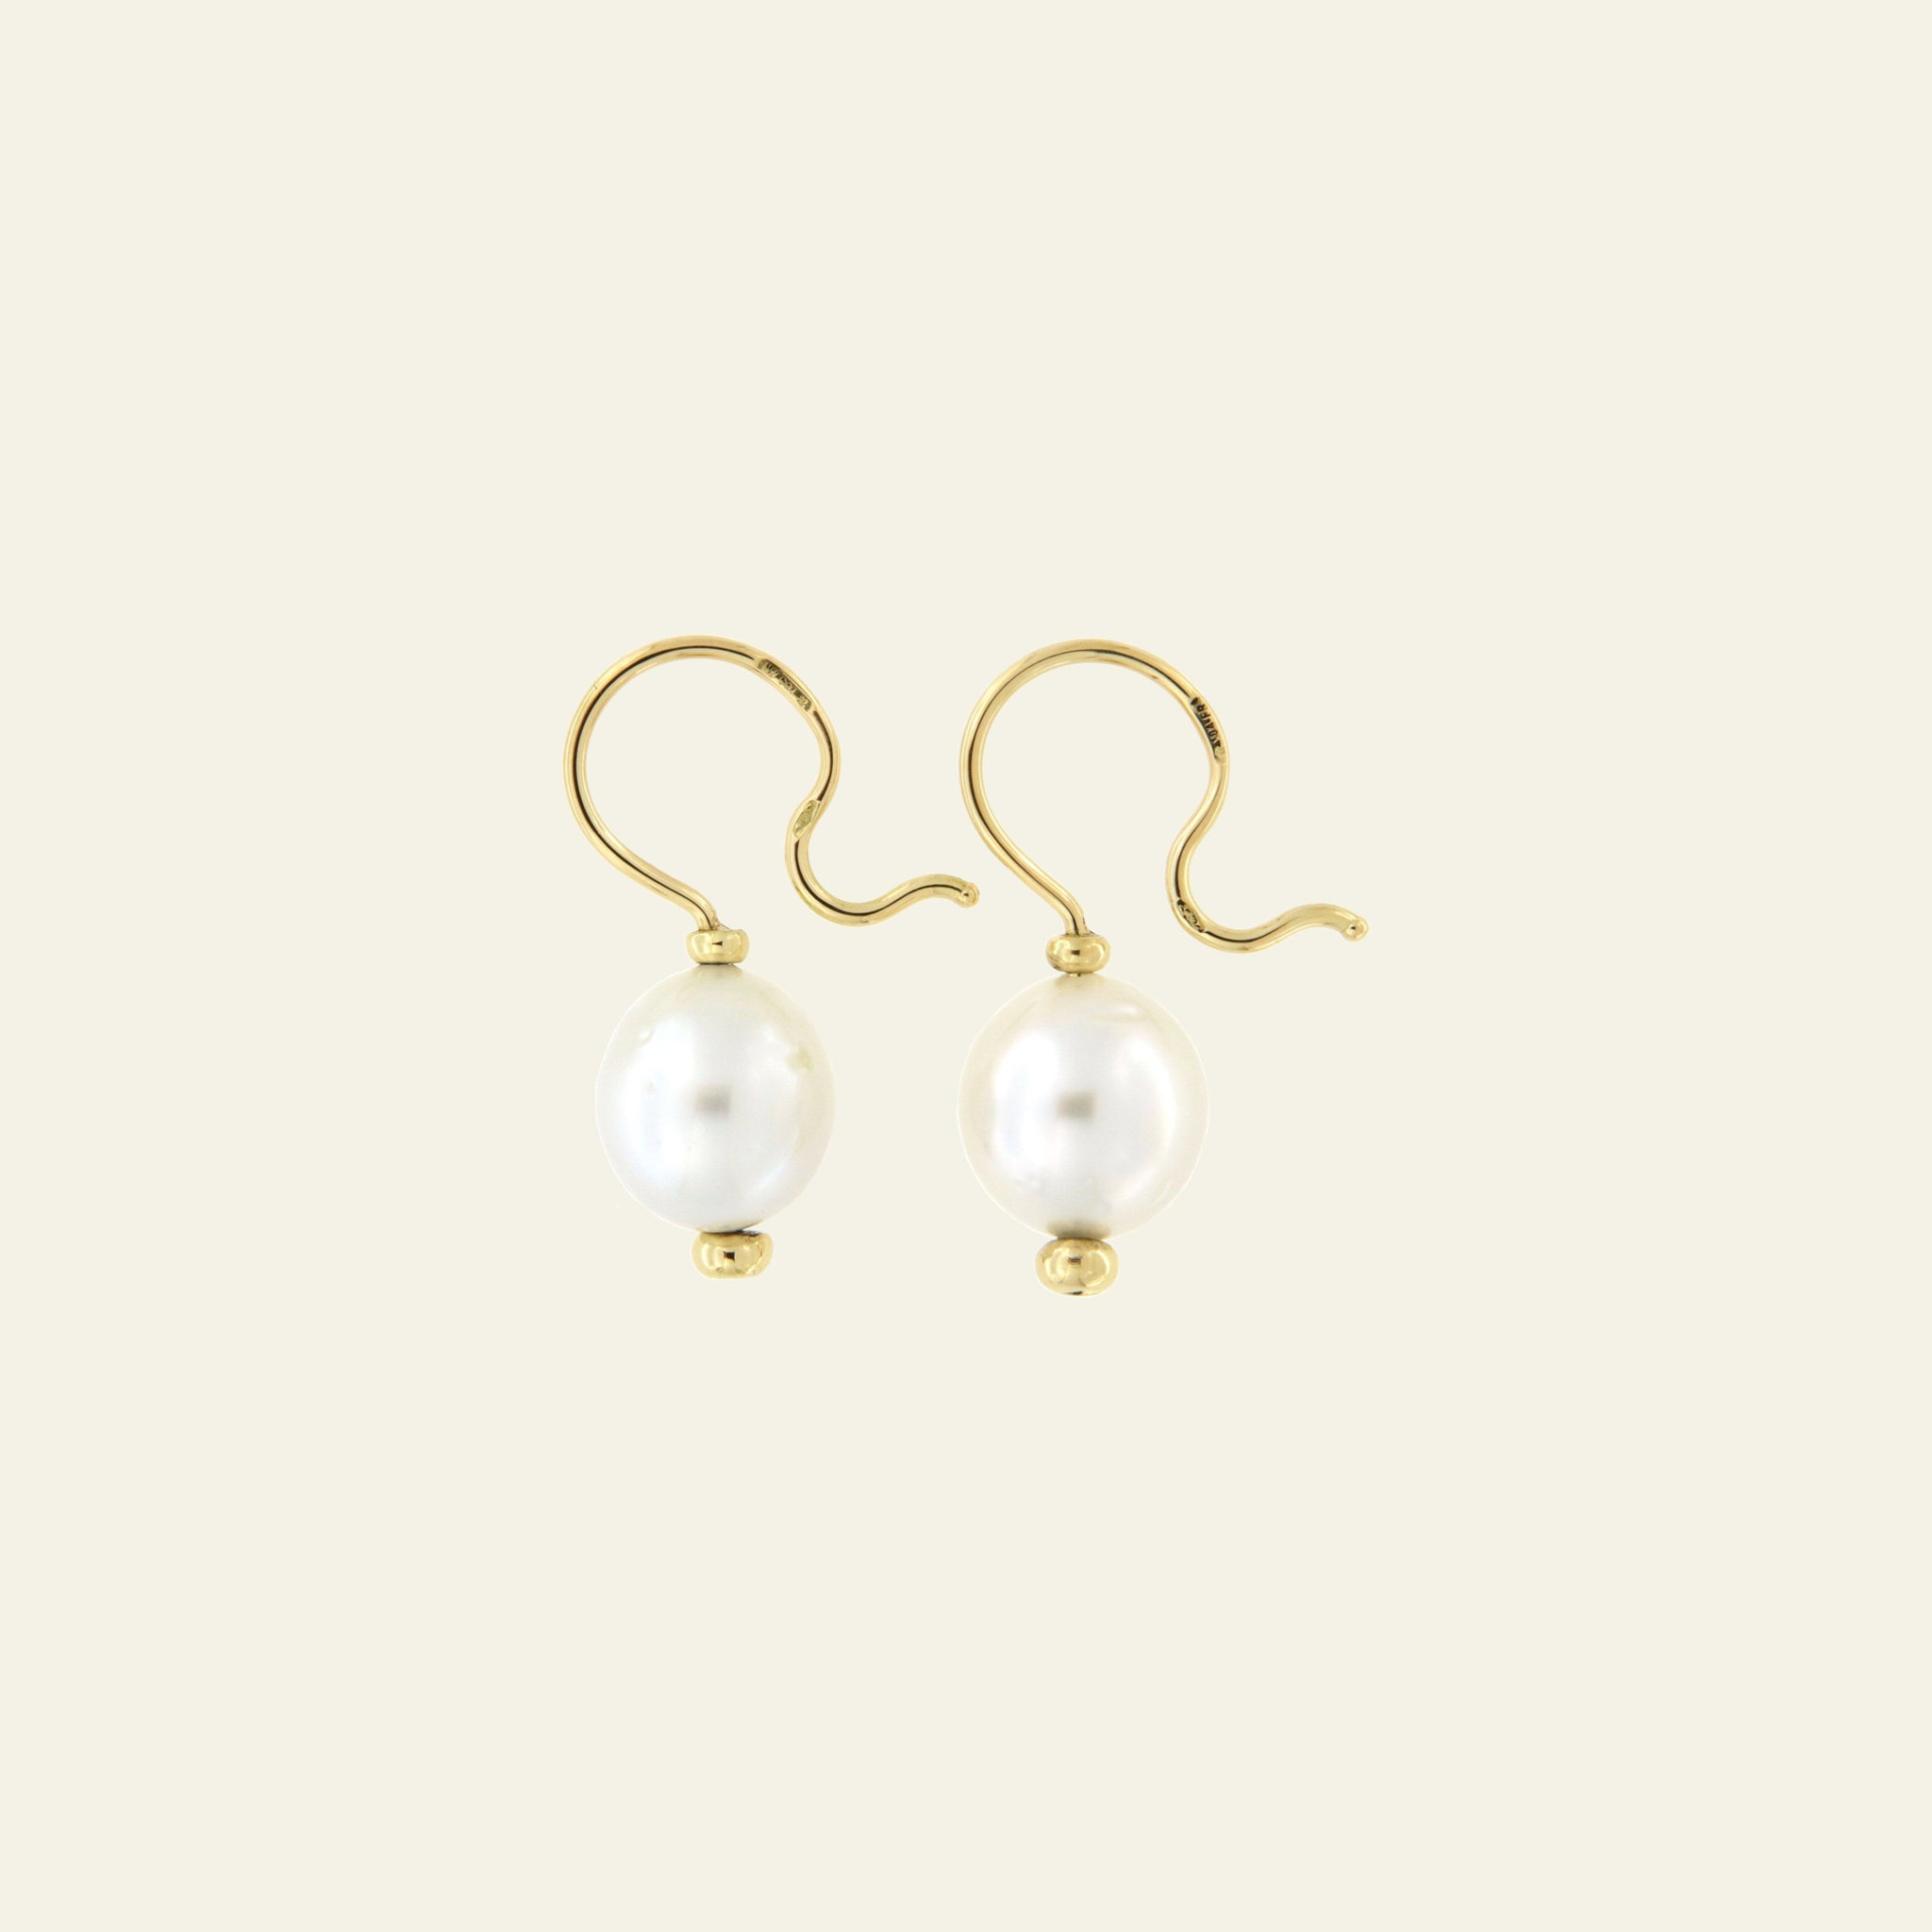 Orecchini Cielo <br /> esemplare N.32 <br /> Perle South Sea <br /> Oro Fairtrade 18k